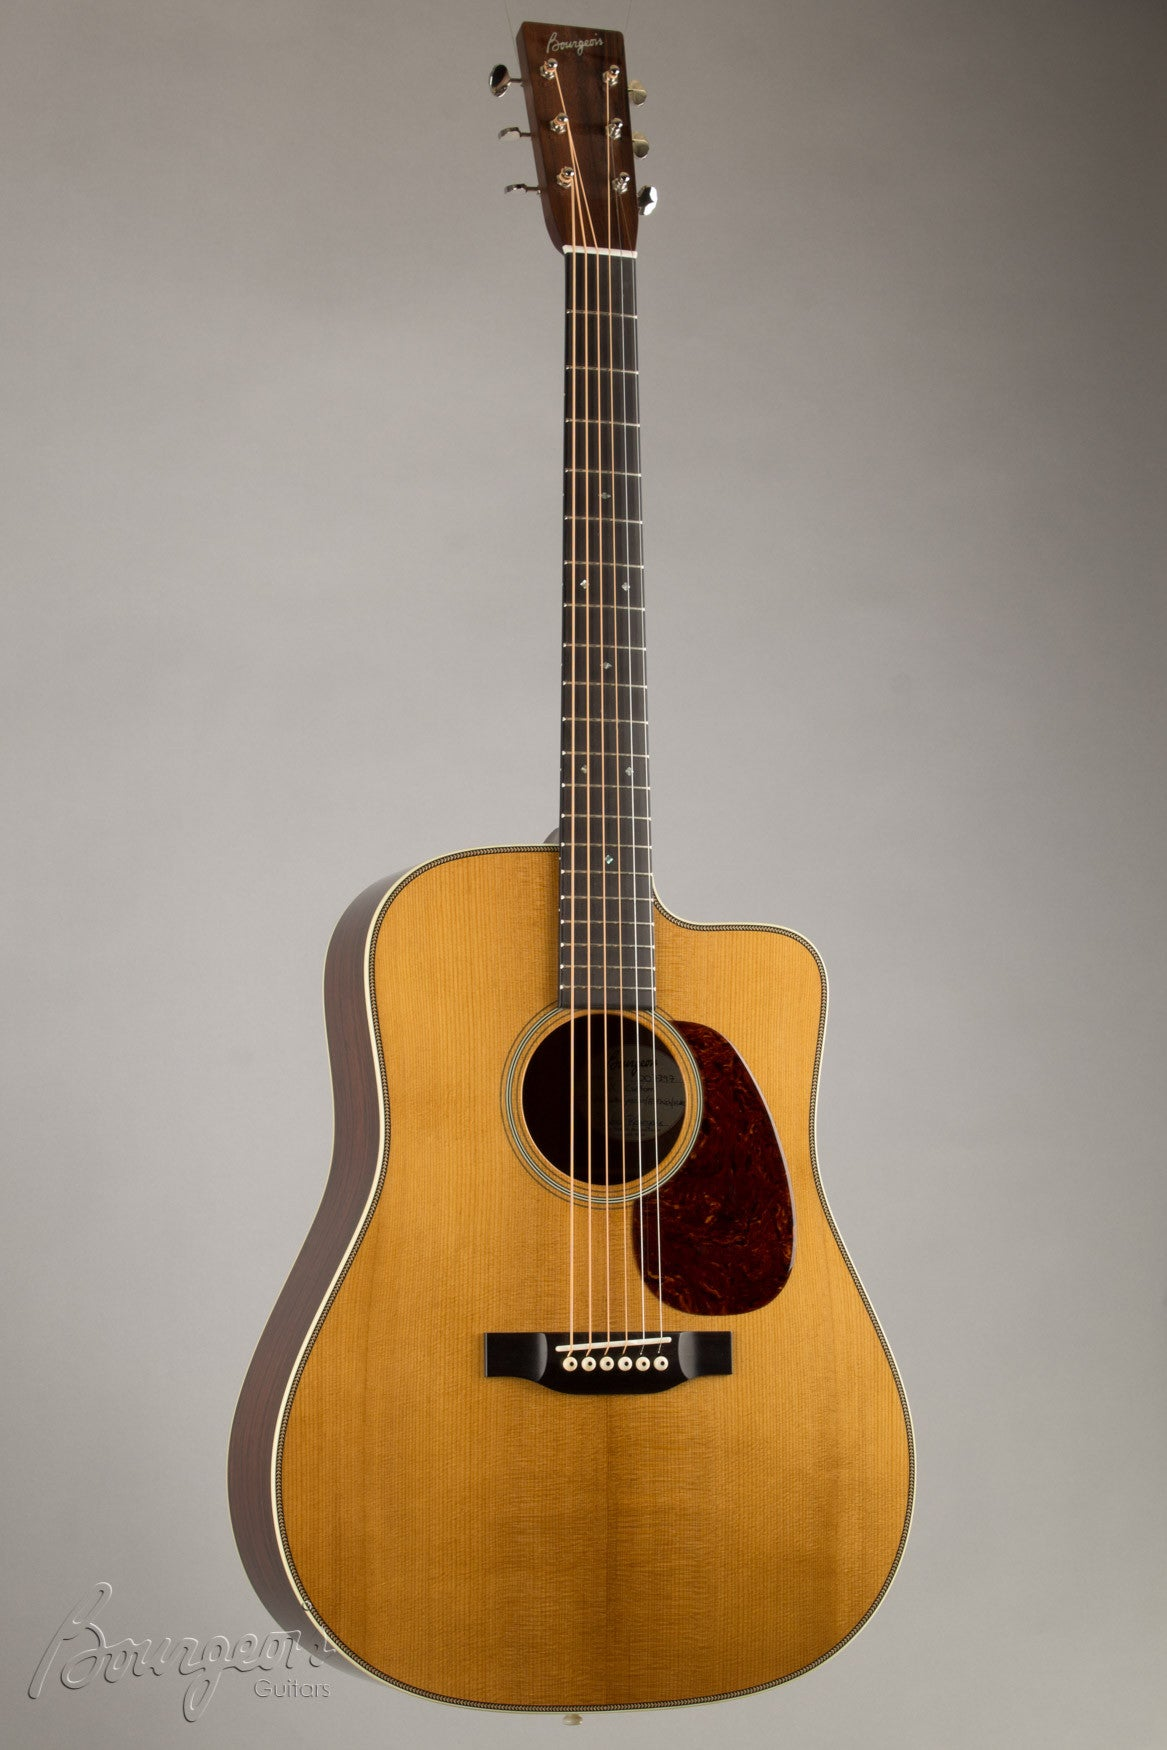 Bourgeois Madagascar RW Vintage Dreadnought with Cutaway